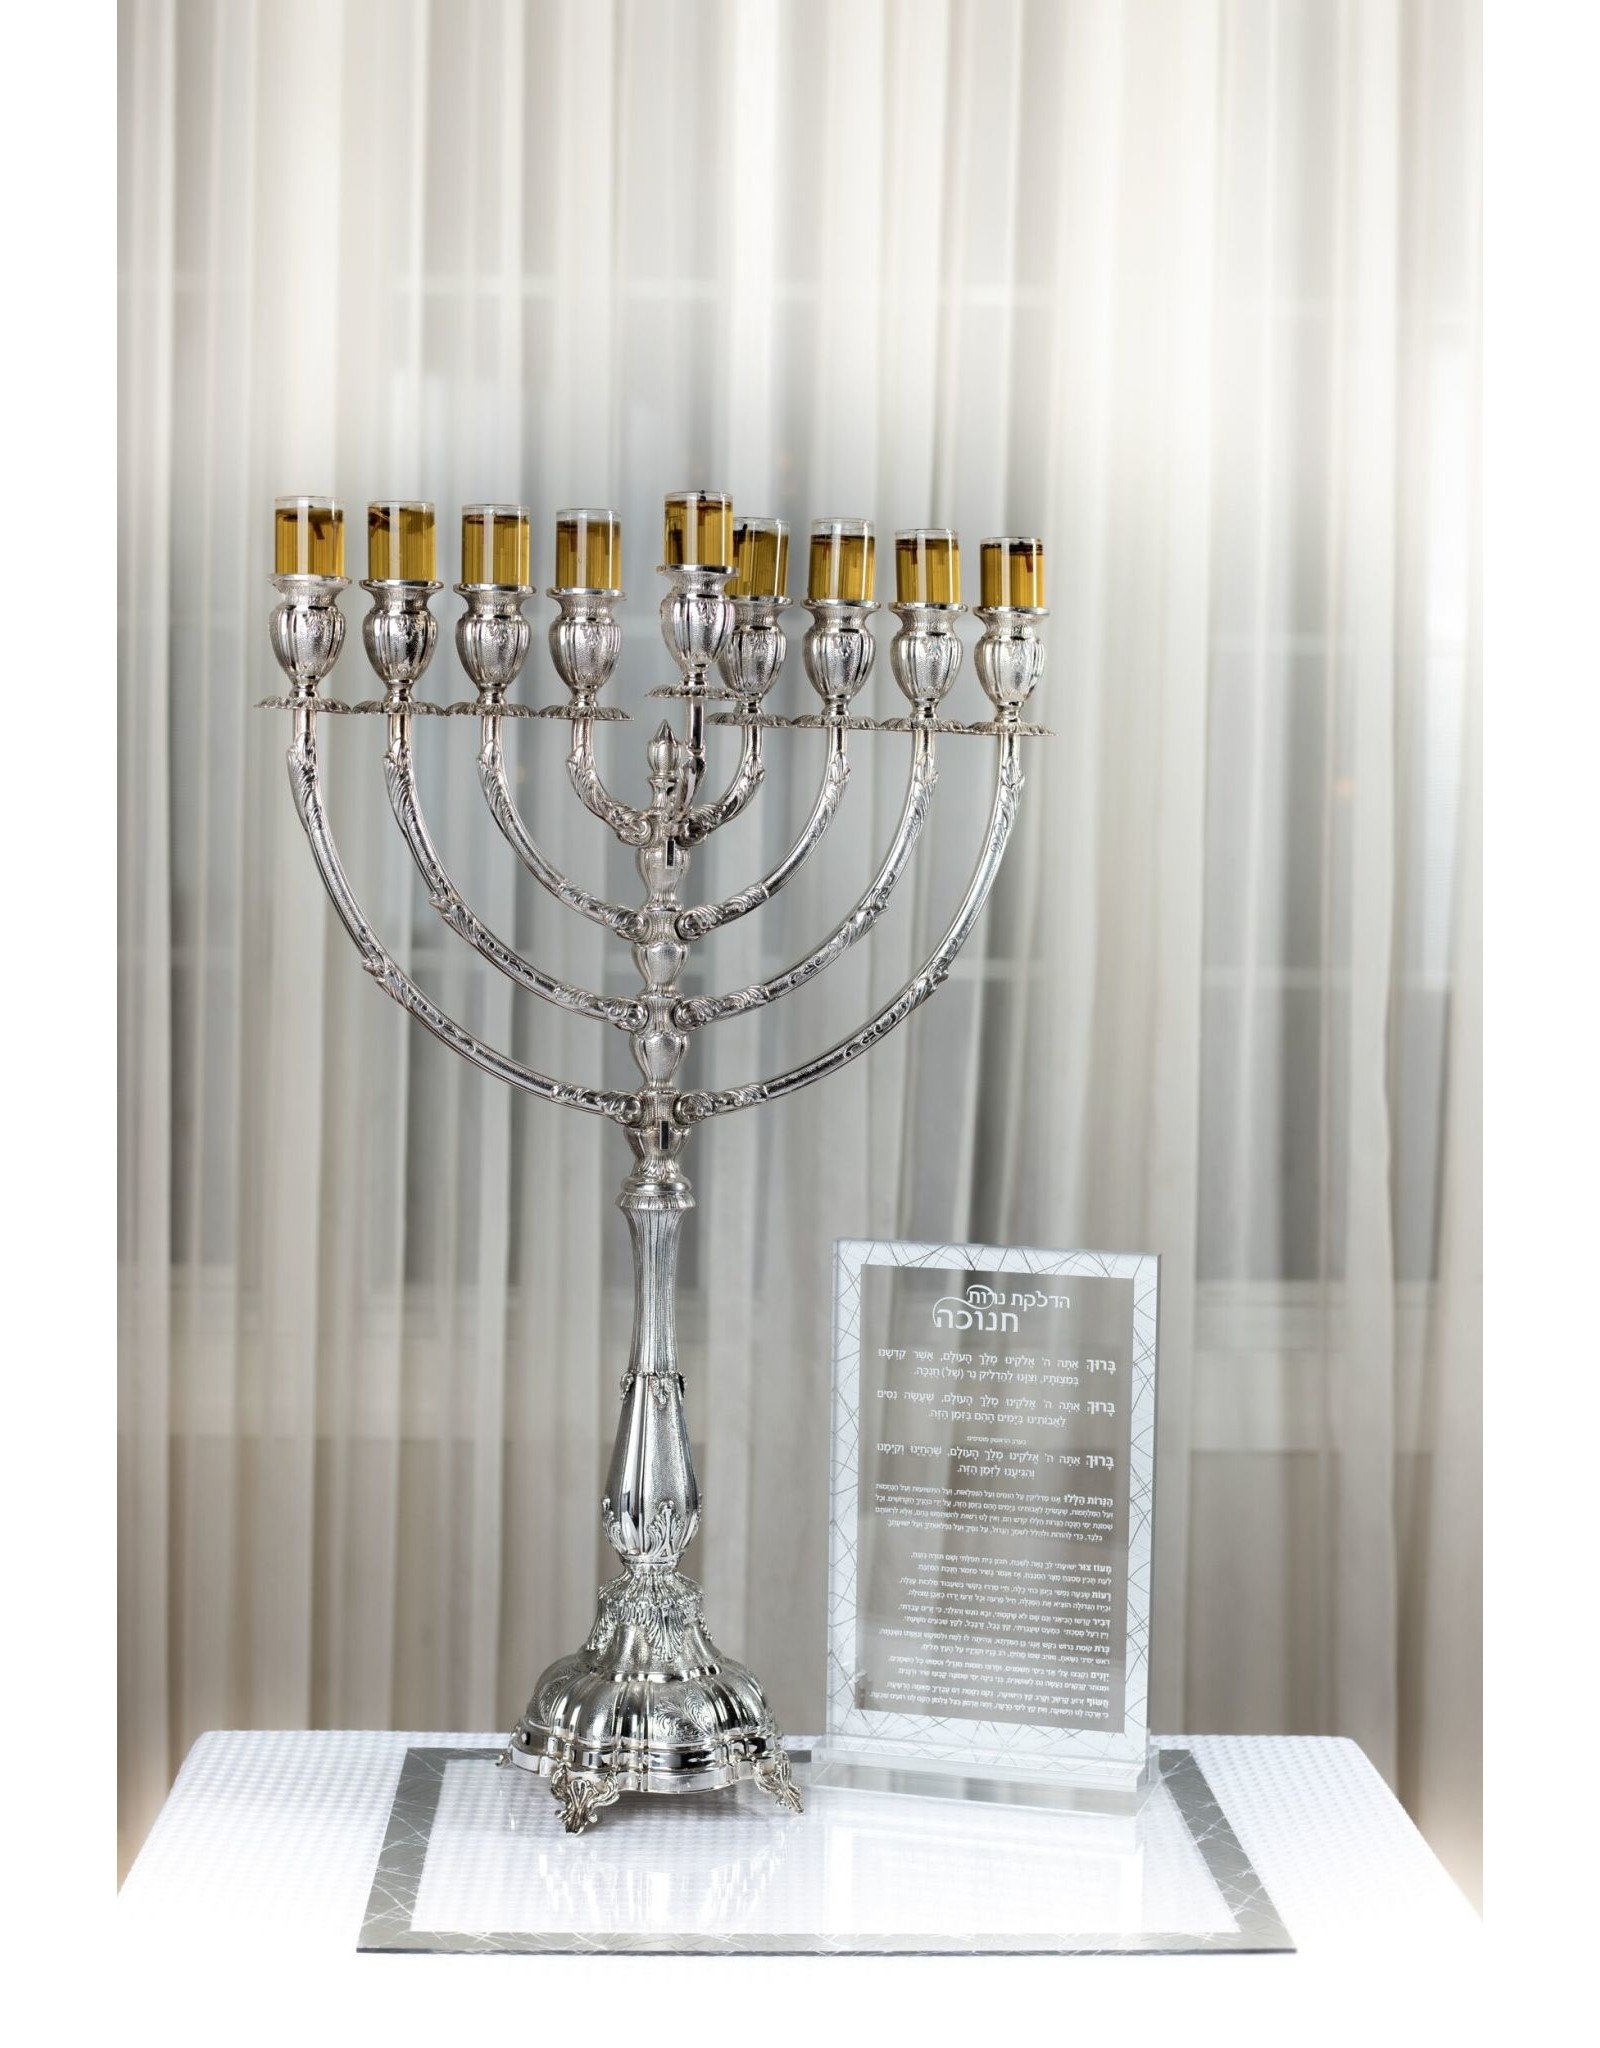 Presented Touch Chanukah Tray Cracked Glass Design Design Clear Silver